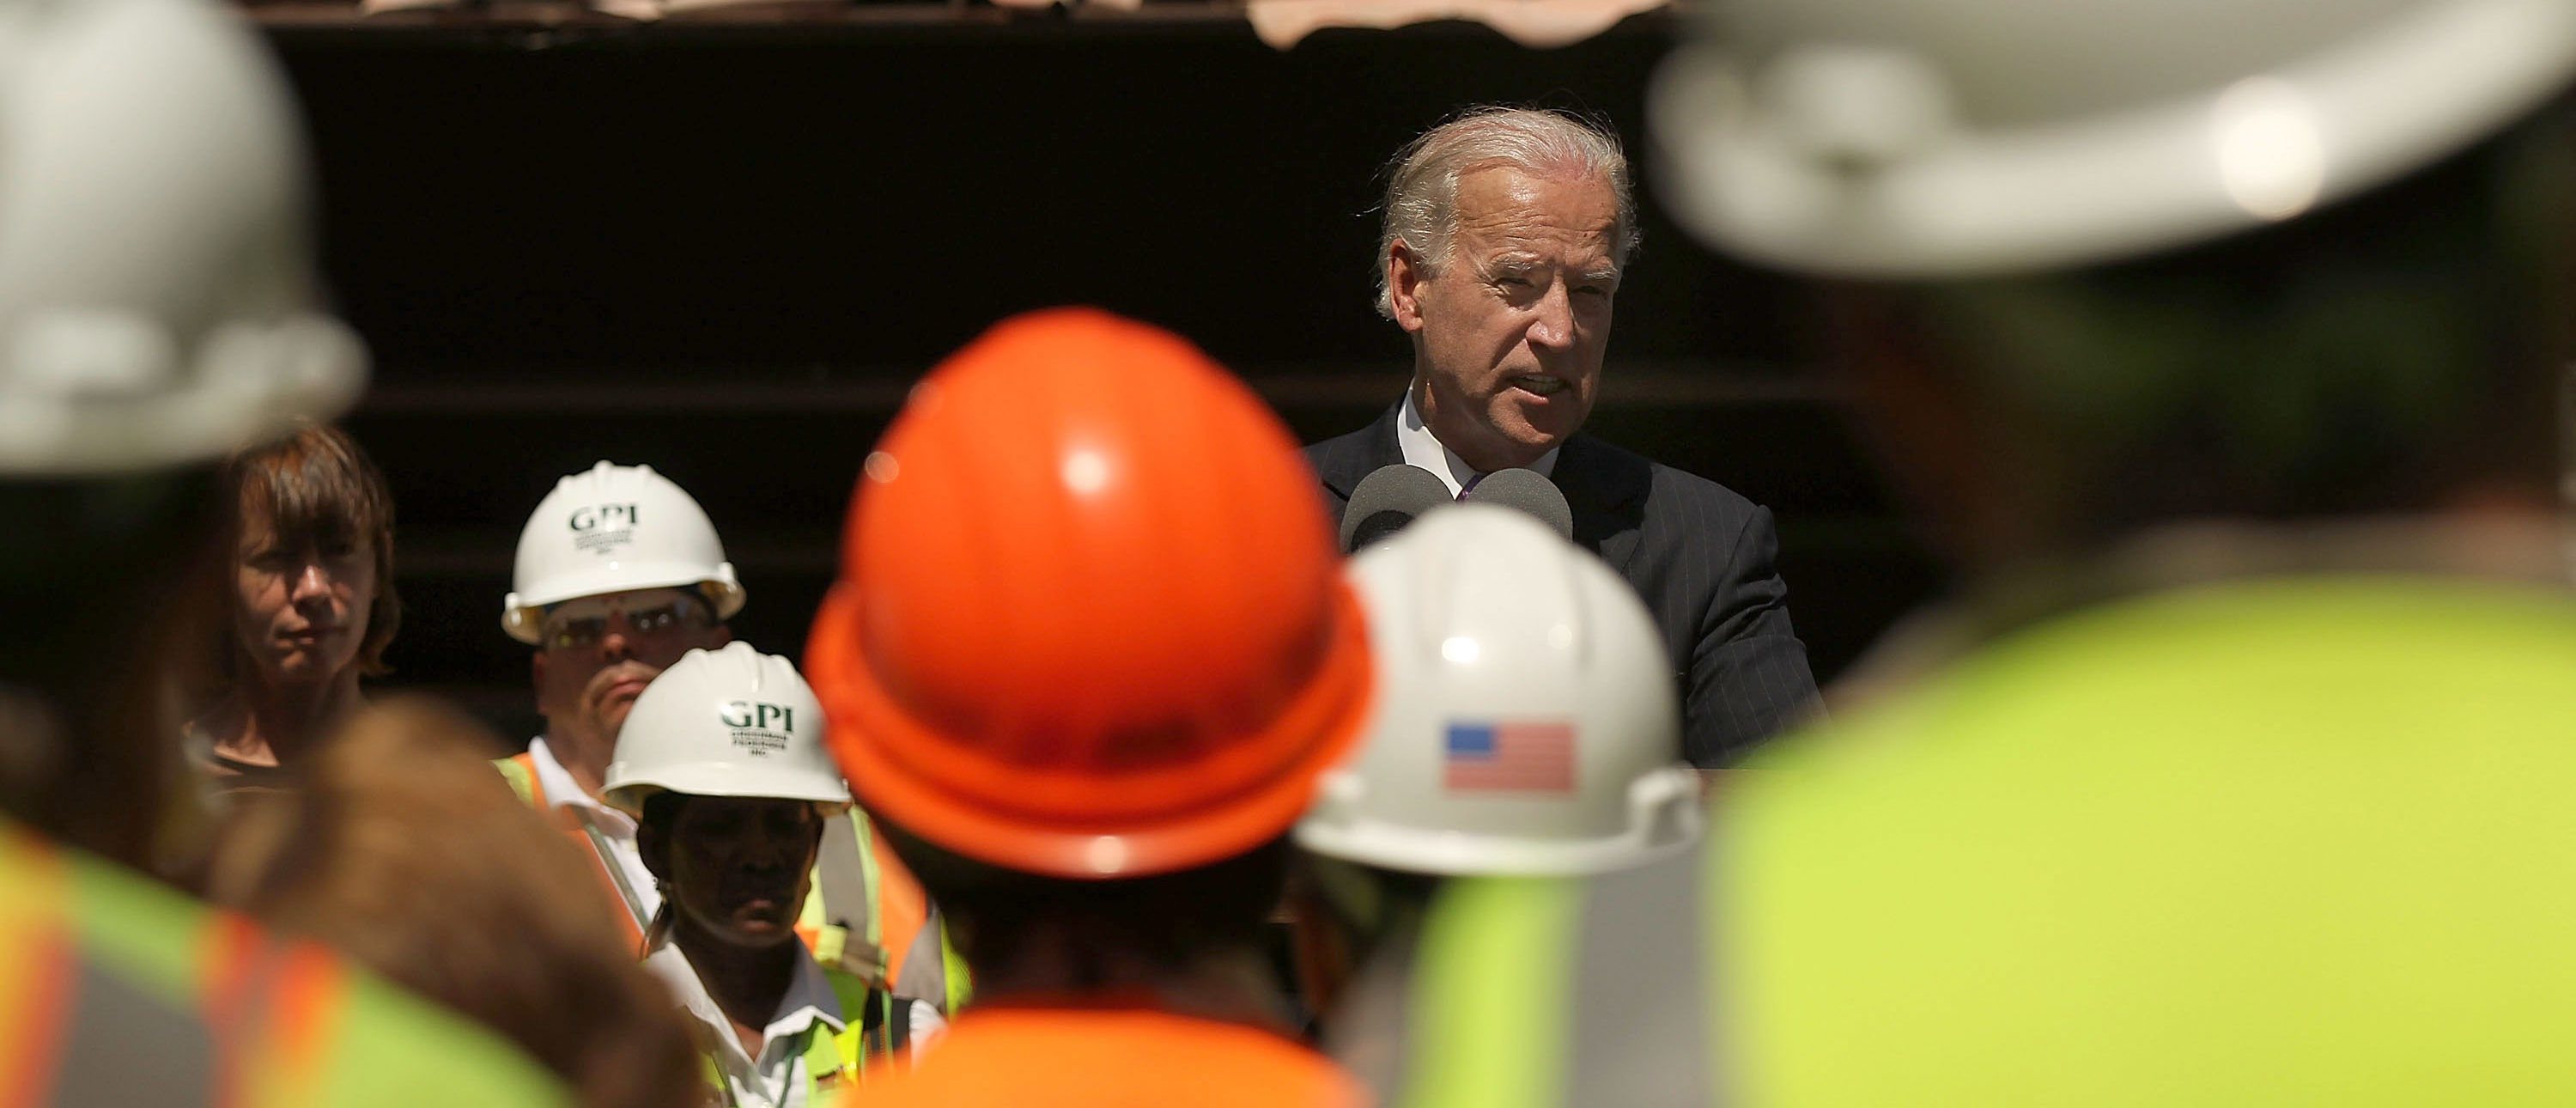 NEW YORK - JUNE 02: Vice President Joe Biden speaks to construction workers under the peeling paint of the Brooklyn Bridge at an event marking the beginning of a Brooklyn Bridge renovation project which is partly funded by money from the federal economic recovery act on June 2, 2010 in New York, New York. The renovation and maintenance project, which is set for completion in 2014, will cost roughly $500 million and will include repainting parts of the iconic bridge and working to improve traffic flow. (Photo by Spencer Platt/Getty Images)